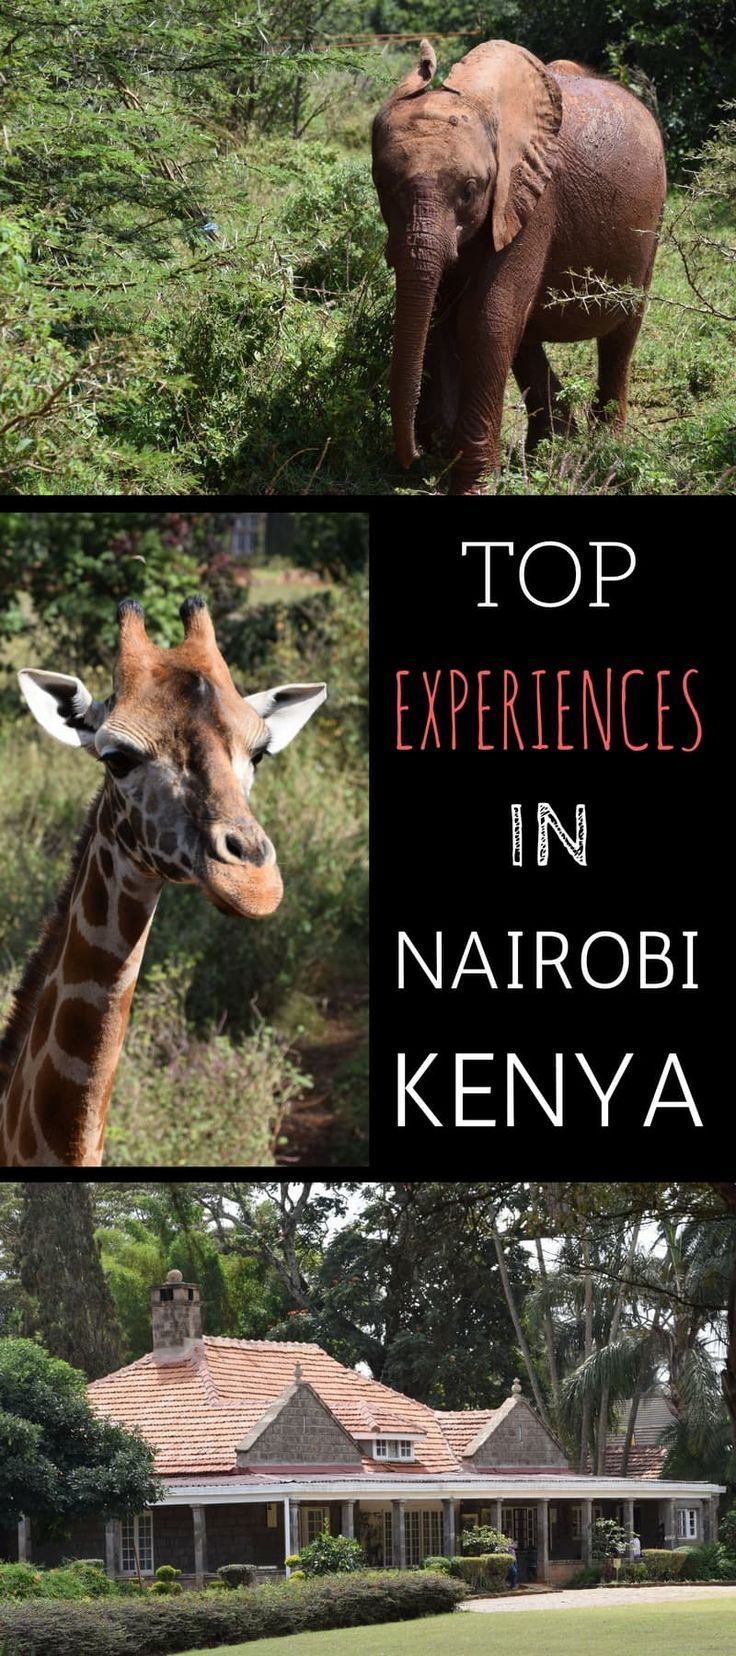 A guide to the top experiences in Nairobi Kenya. This post details all the main attractions and also provides a full 1 day itinerary from our trip to Nairobi.: